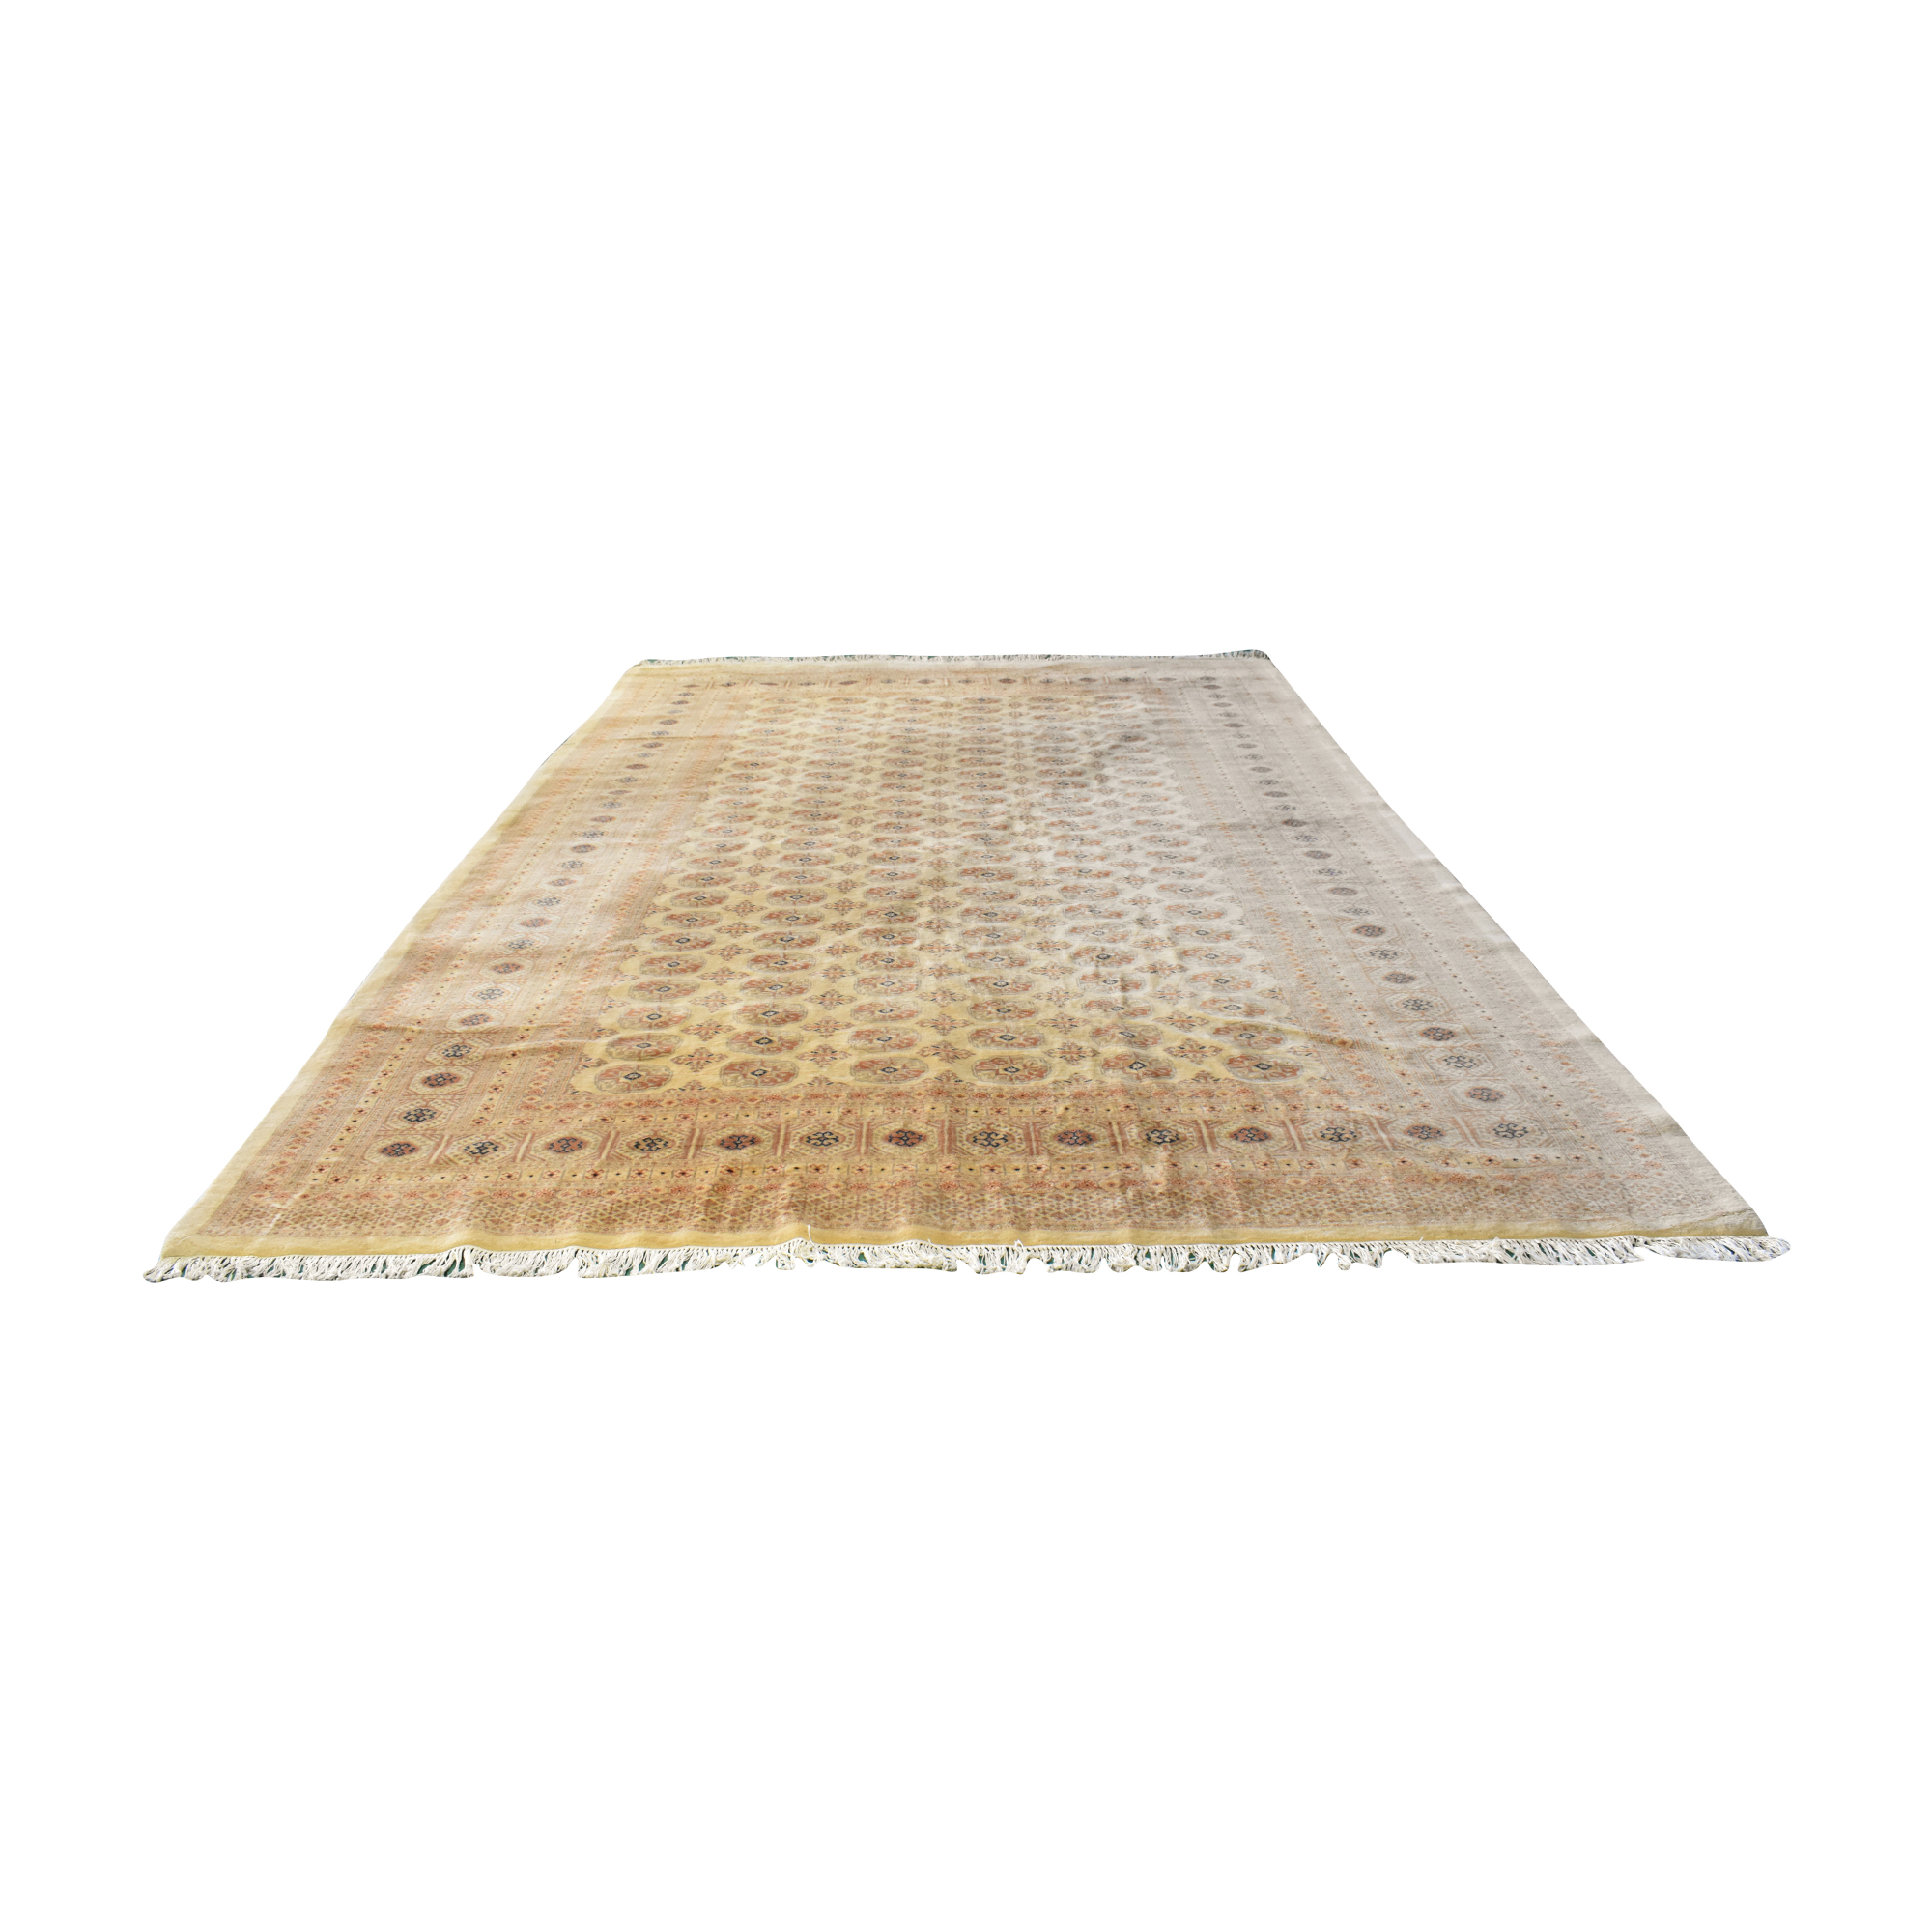 shop Woven Concepts Patterned Area Rug Woven Concepts Decor